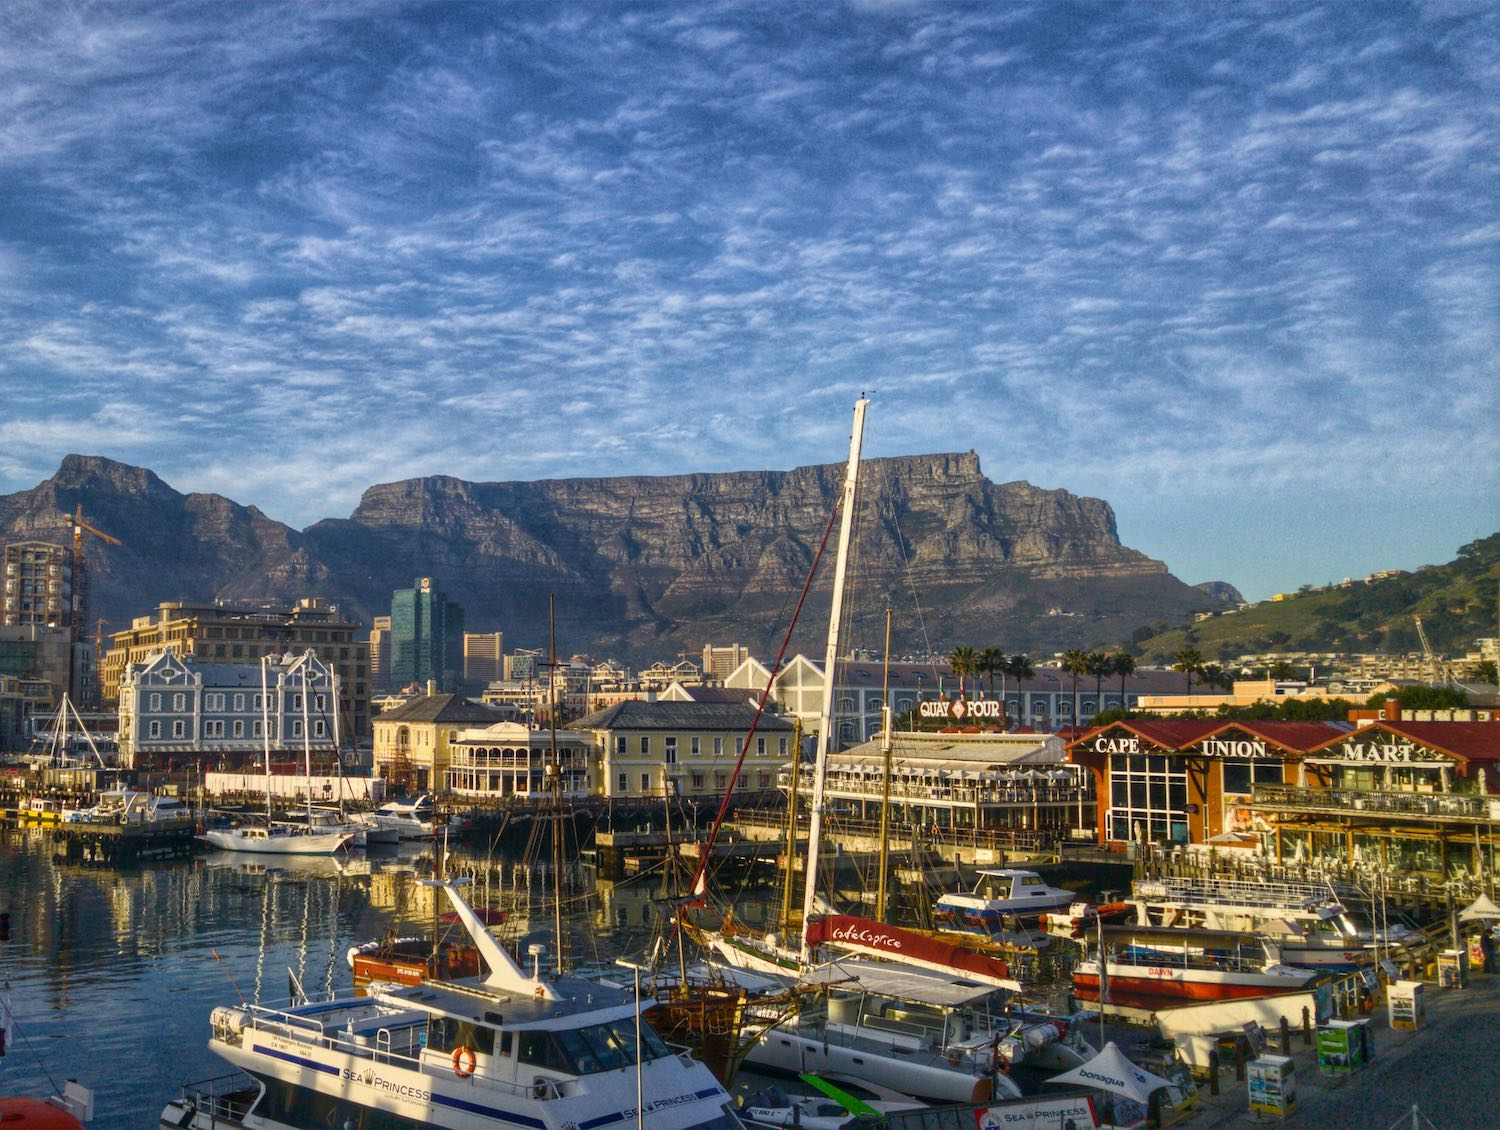 Best Airbnbs in Cape Town, South Africa 2020